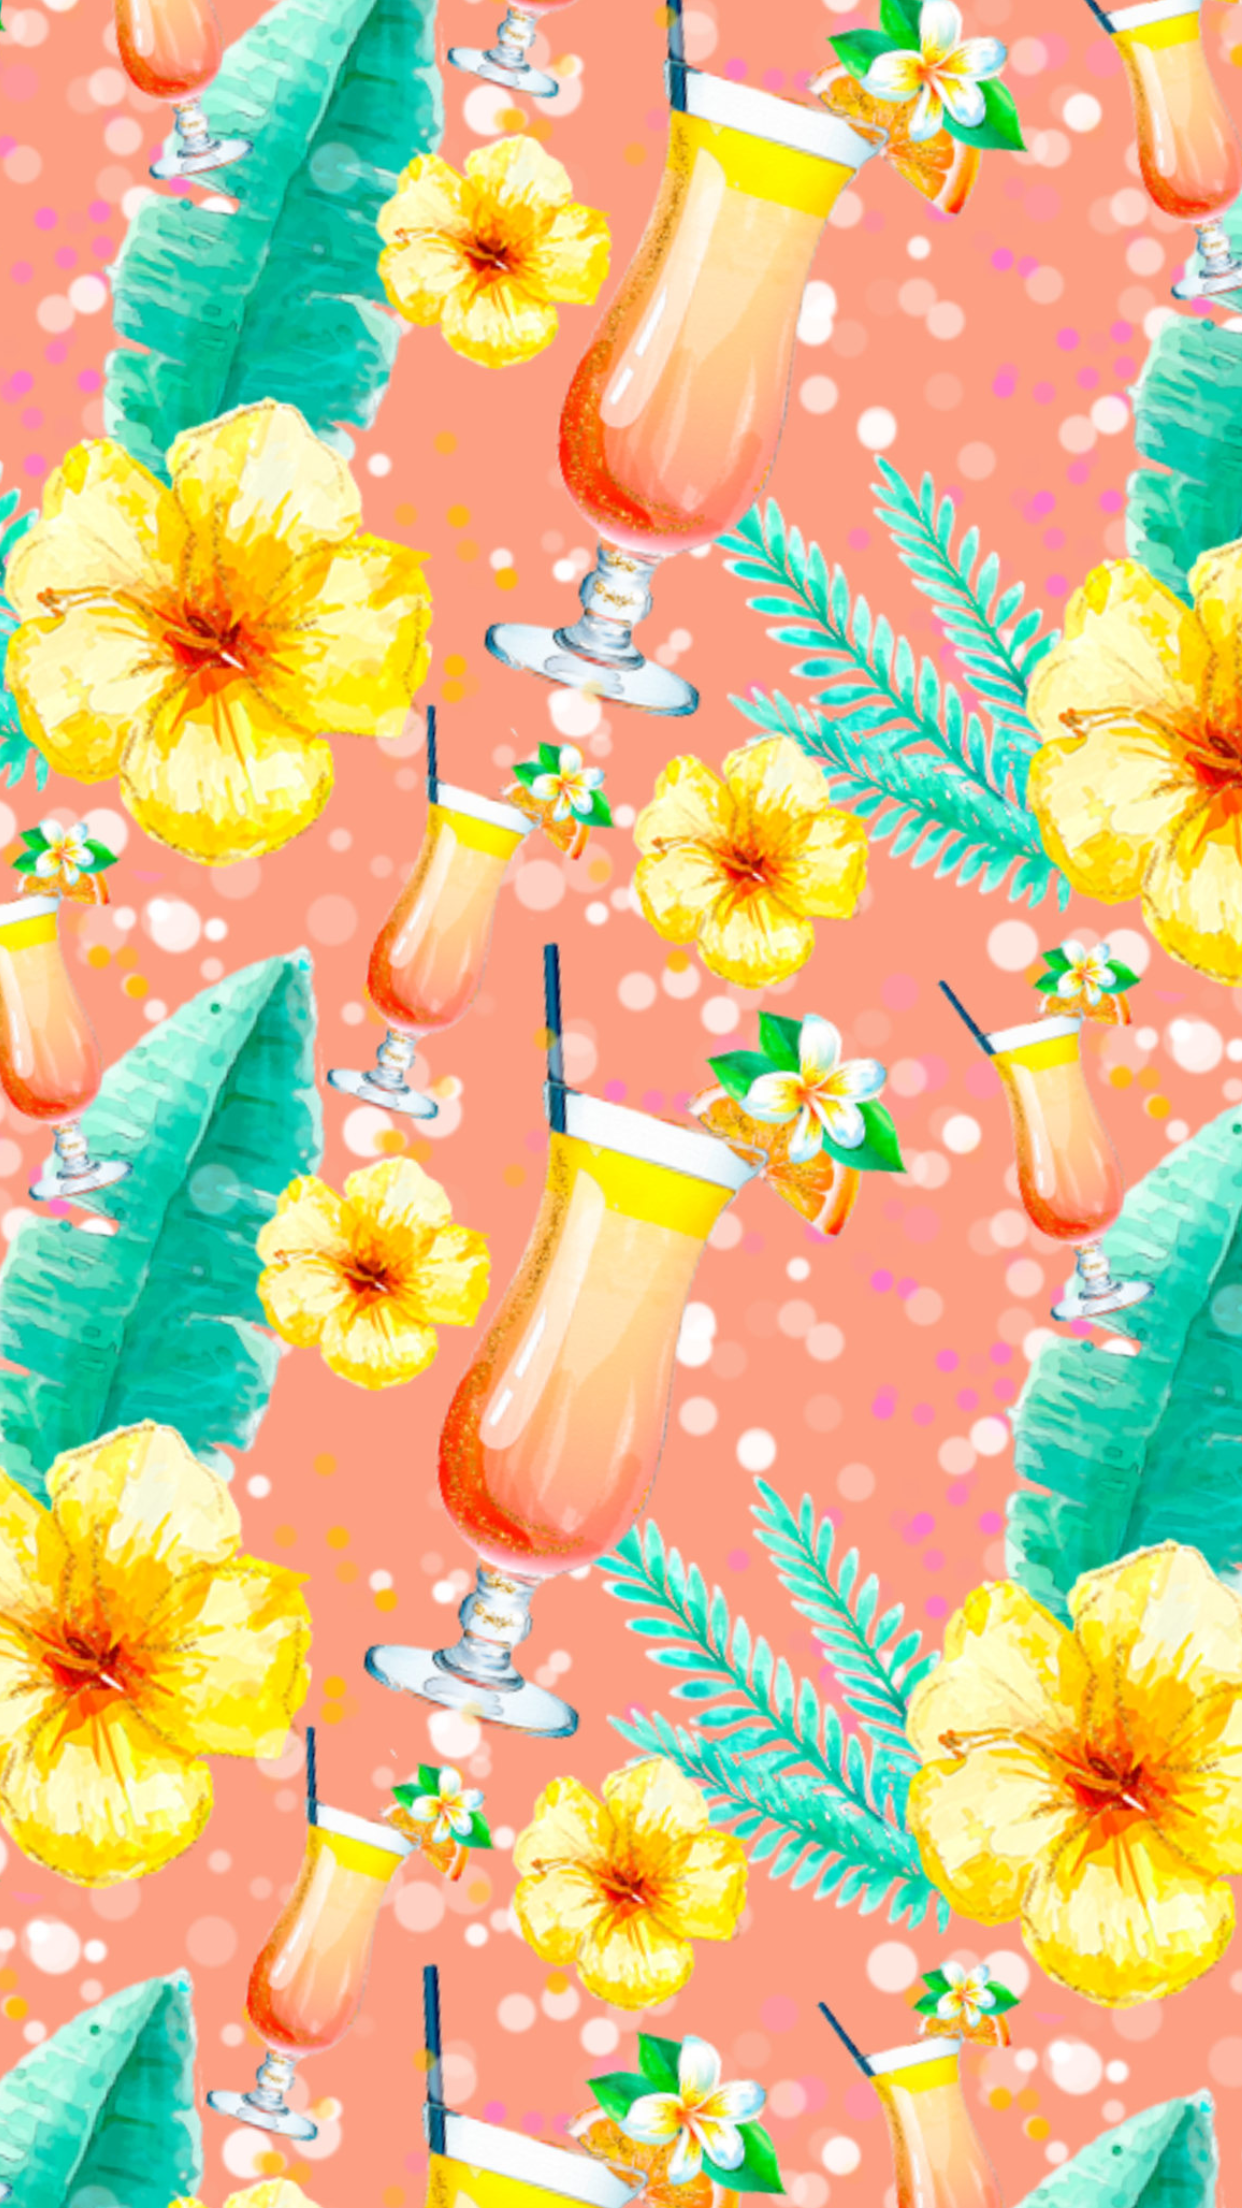 Summer Aesthetic Iphone Backgrounds